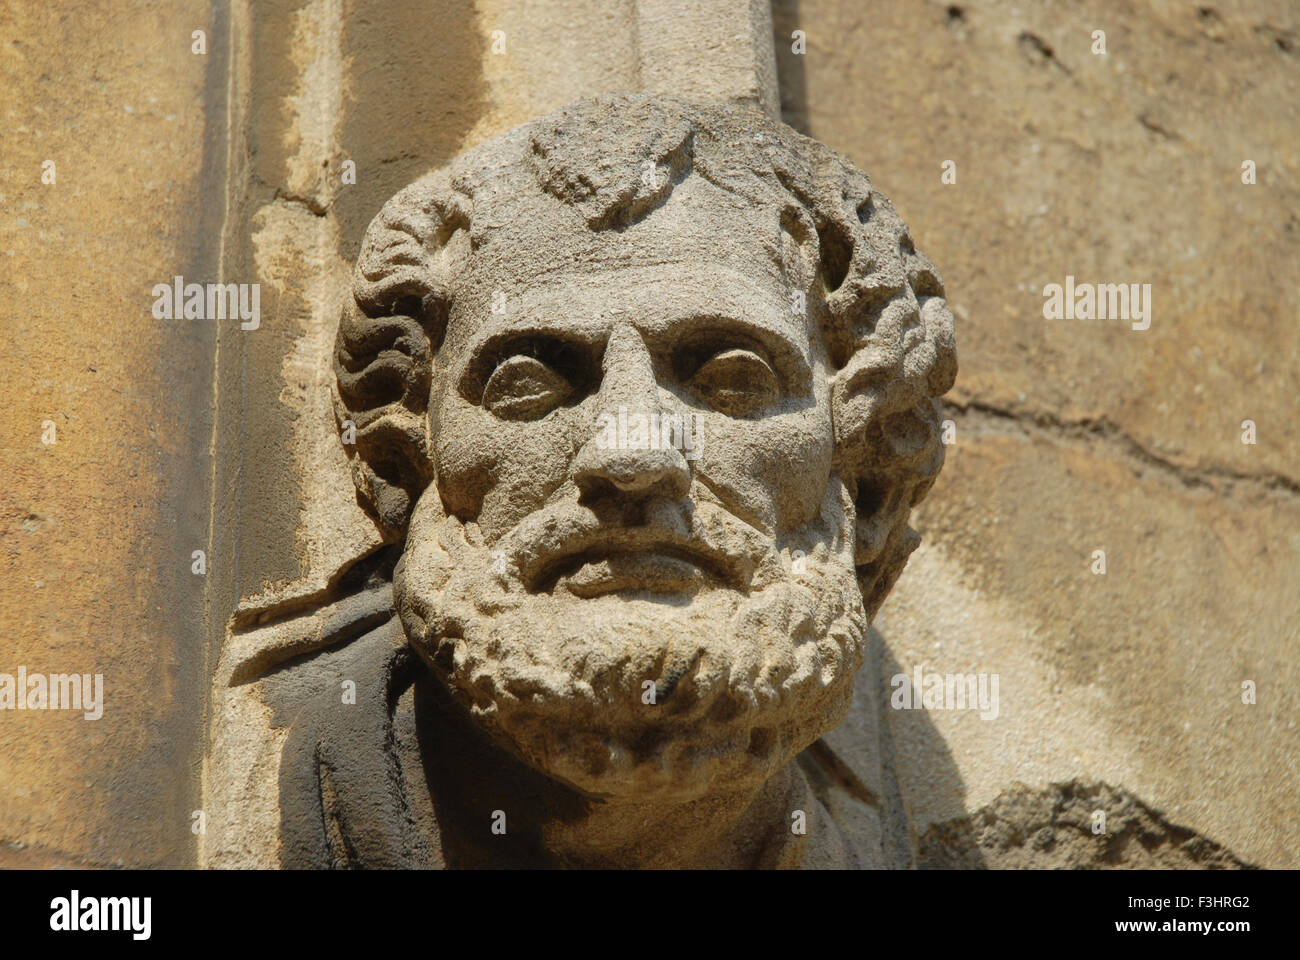 Aristotle decorating the Schola Moralis Philosophiae doorway, Bodleian Library, Oxford University, England - Stock Image